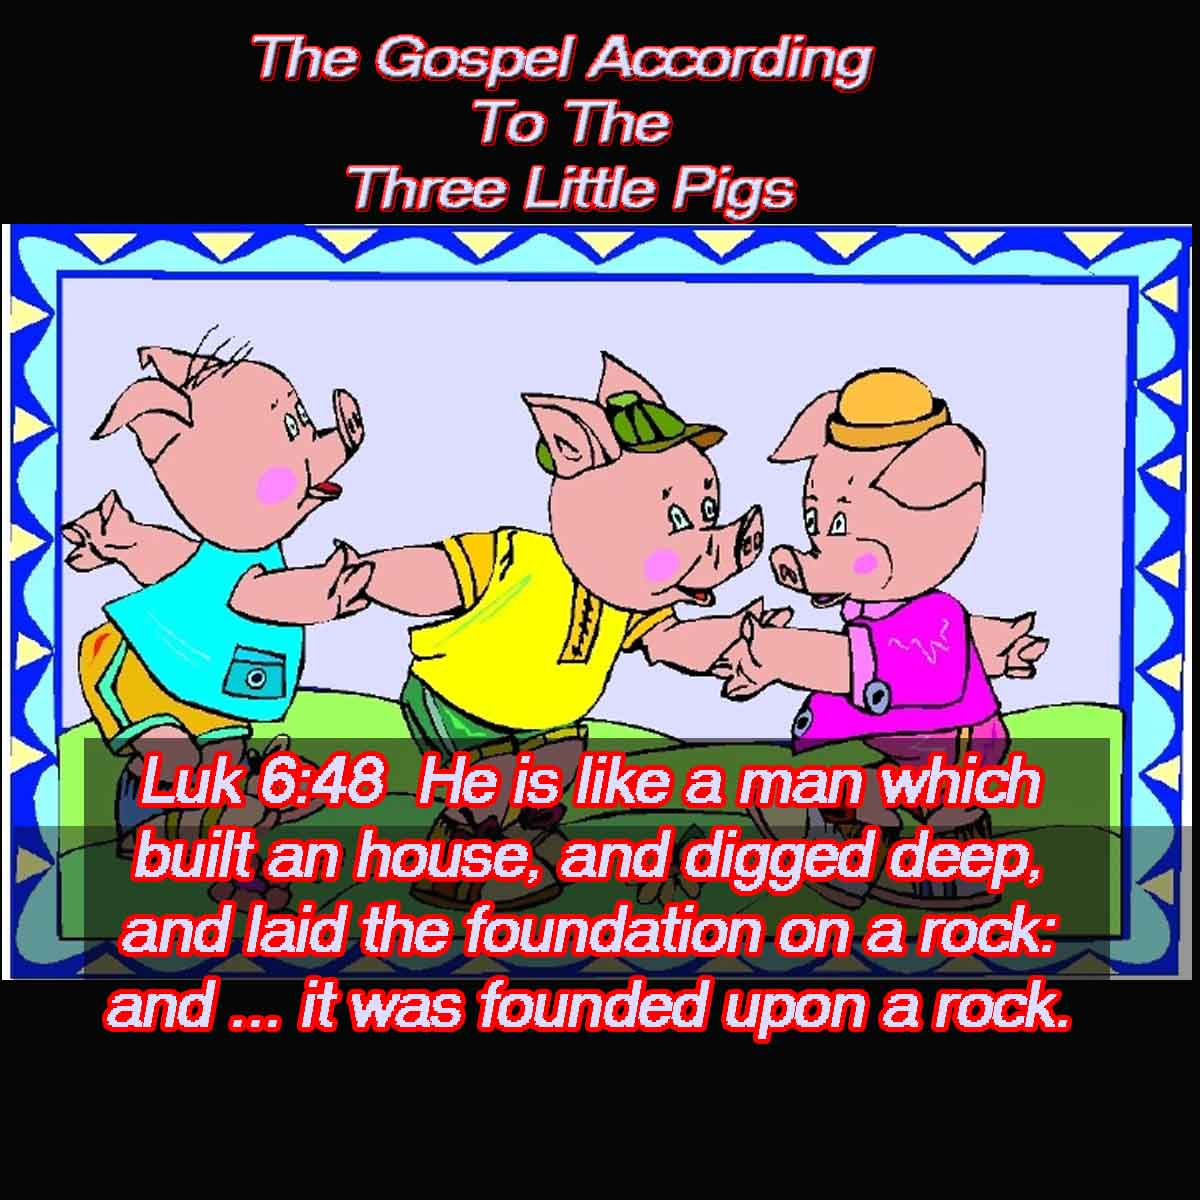 Luk 6:48  He is like a man which built an house, and digged deep, and laid the foundation on a rock: and when the flood arose, the stream beat vehemently upon that house, and could not shake it: for it was founded upon a rock.